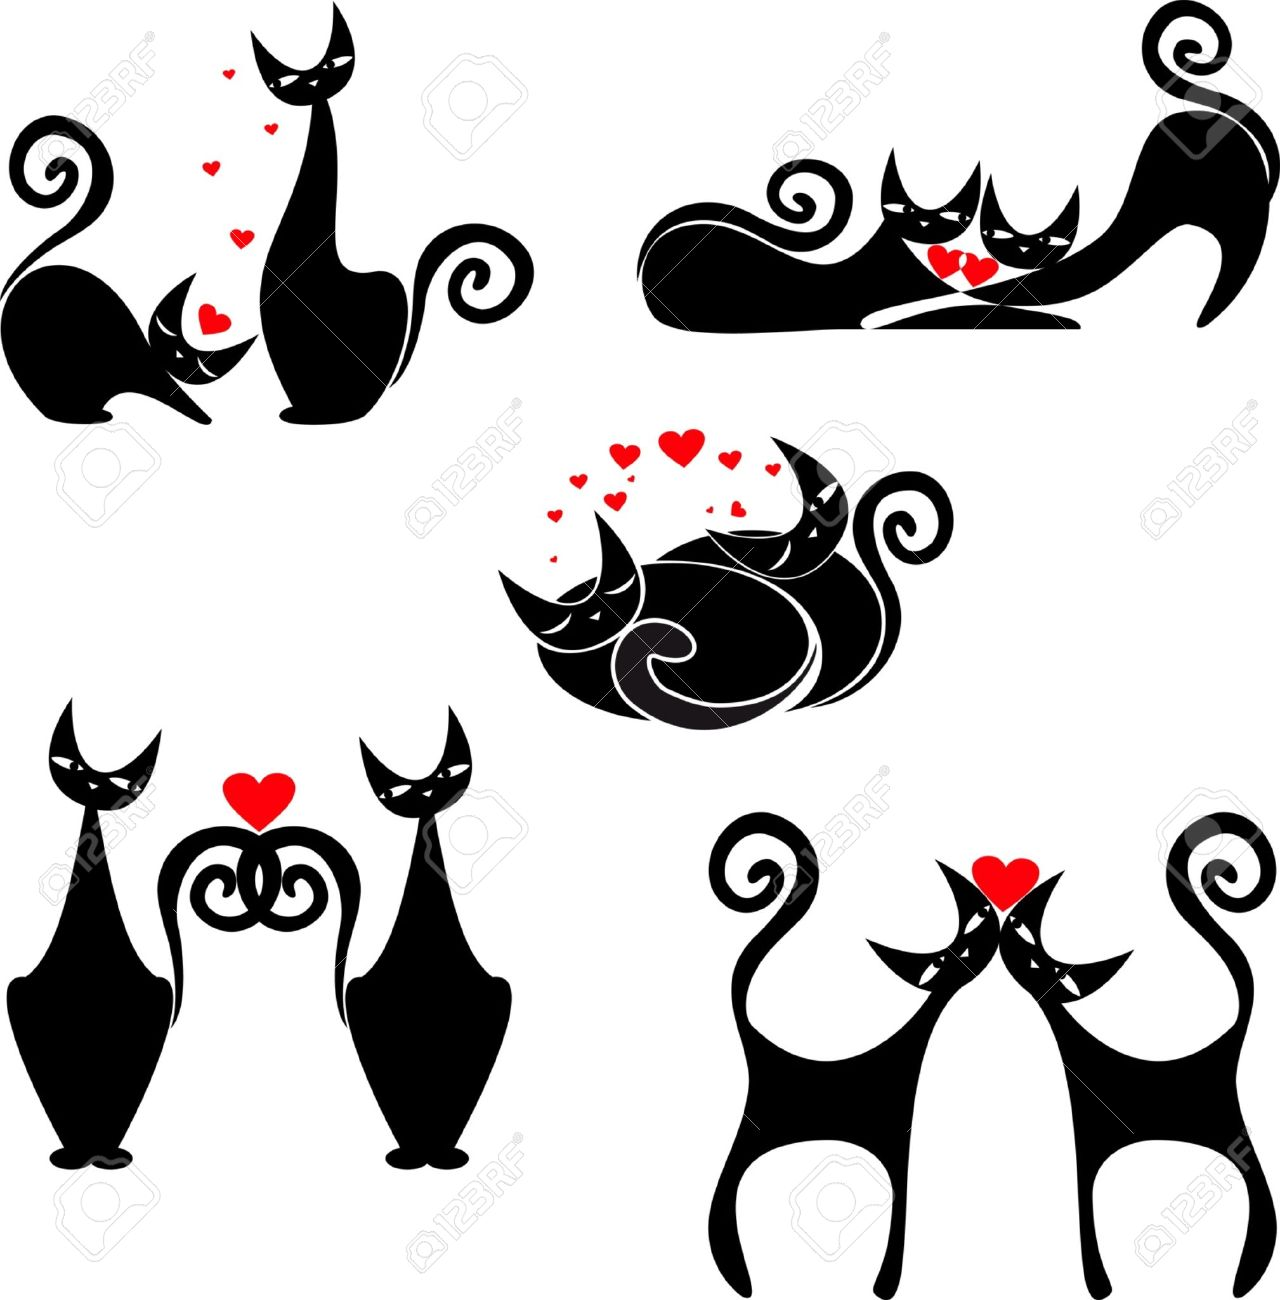 vector set of images of cats to St  Valentine s Day Stock Vector - 17420301